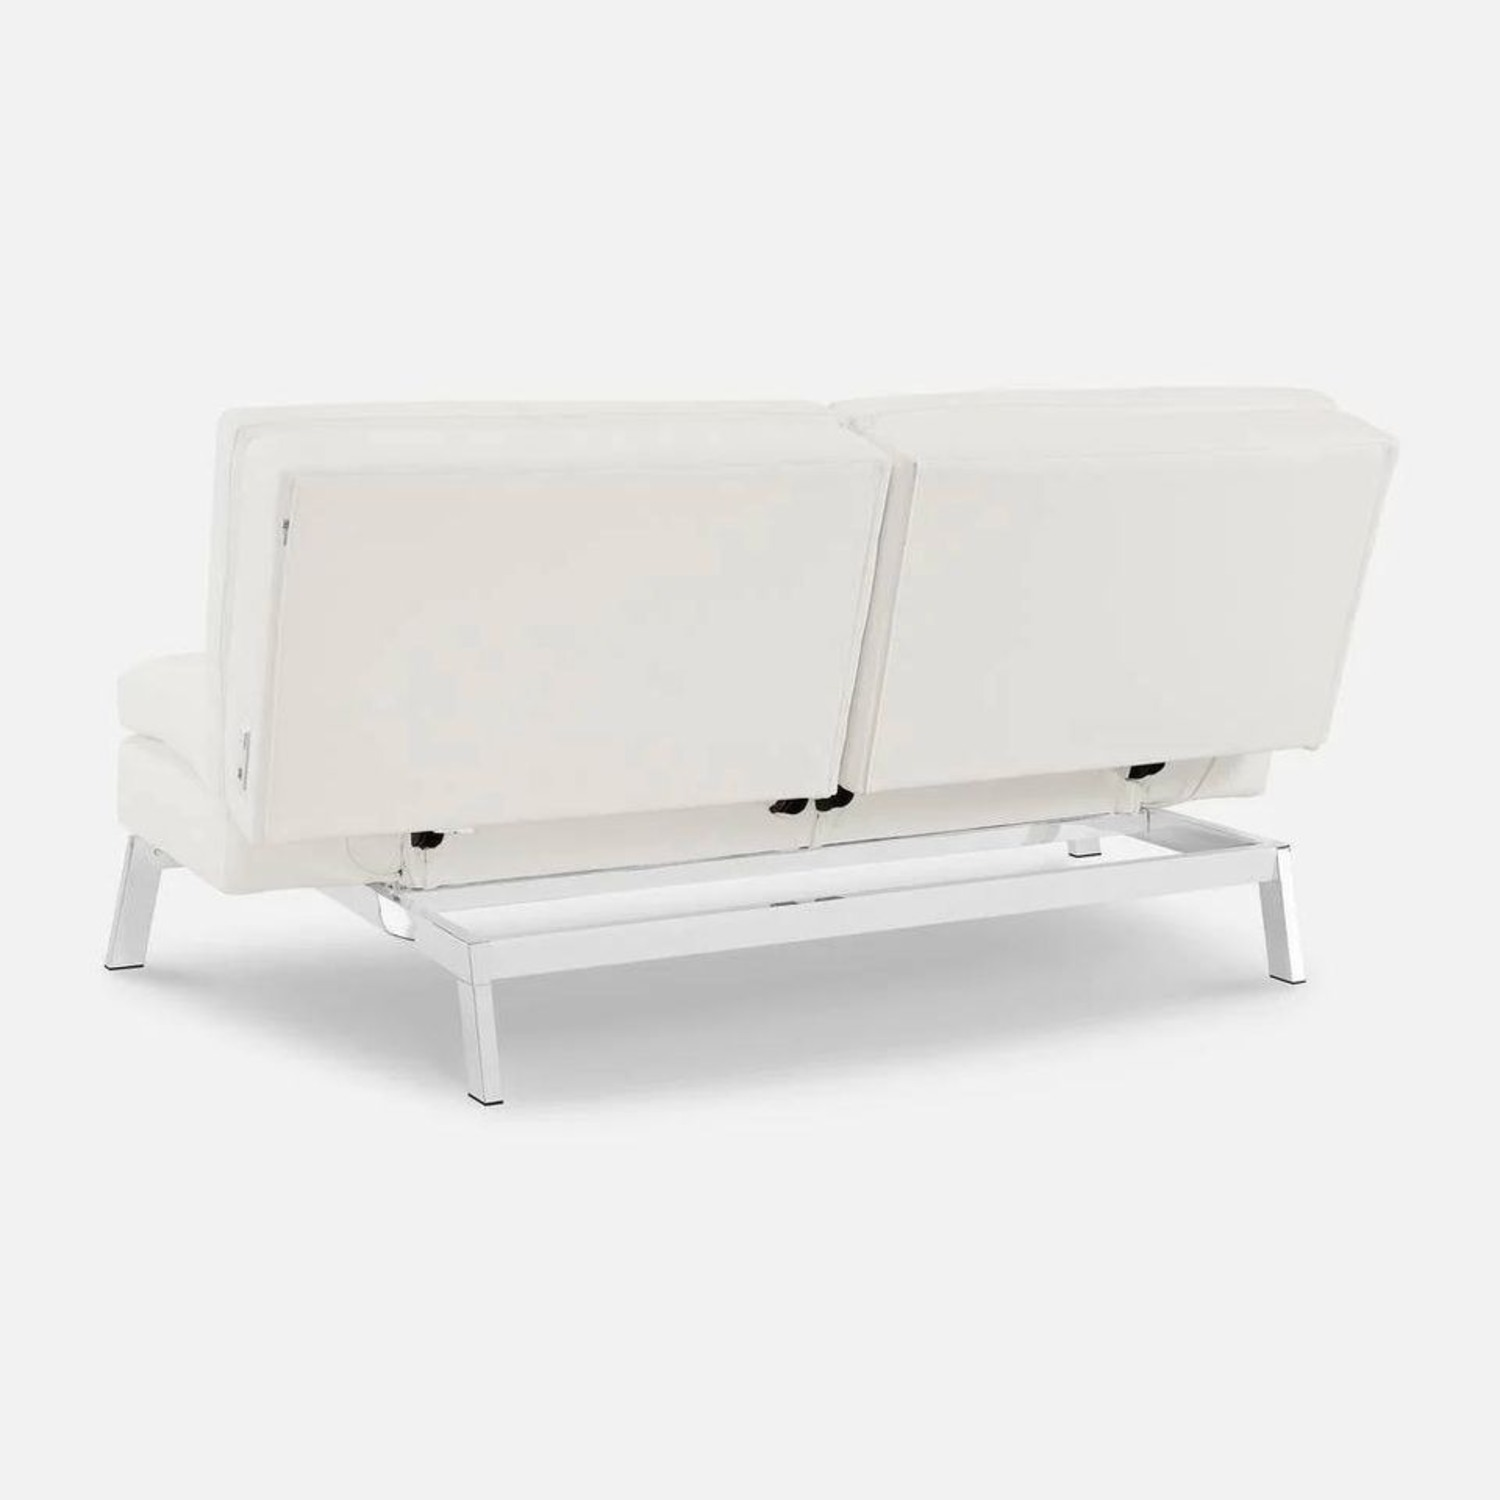 Coddle Toggle Convertible Couch Perl/White Leather - image-10